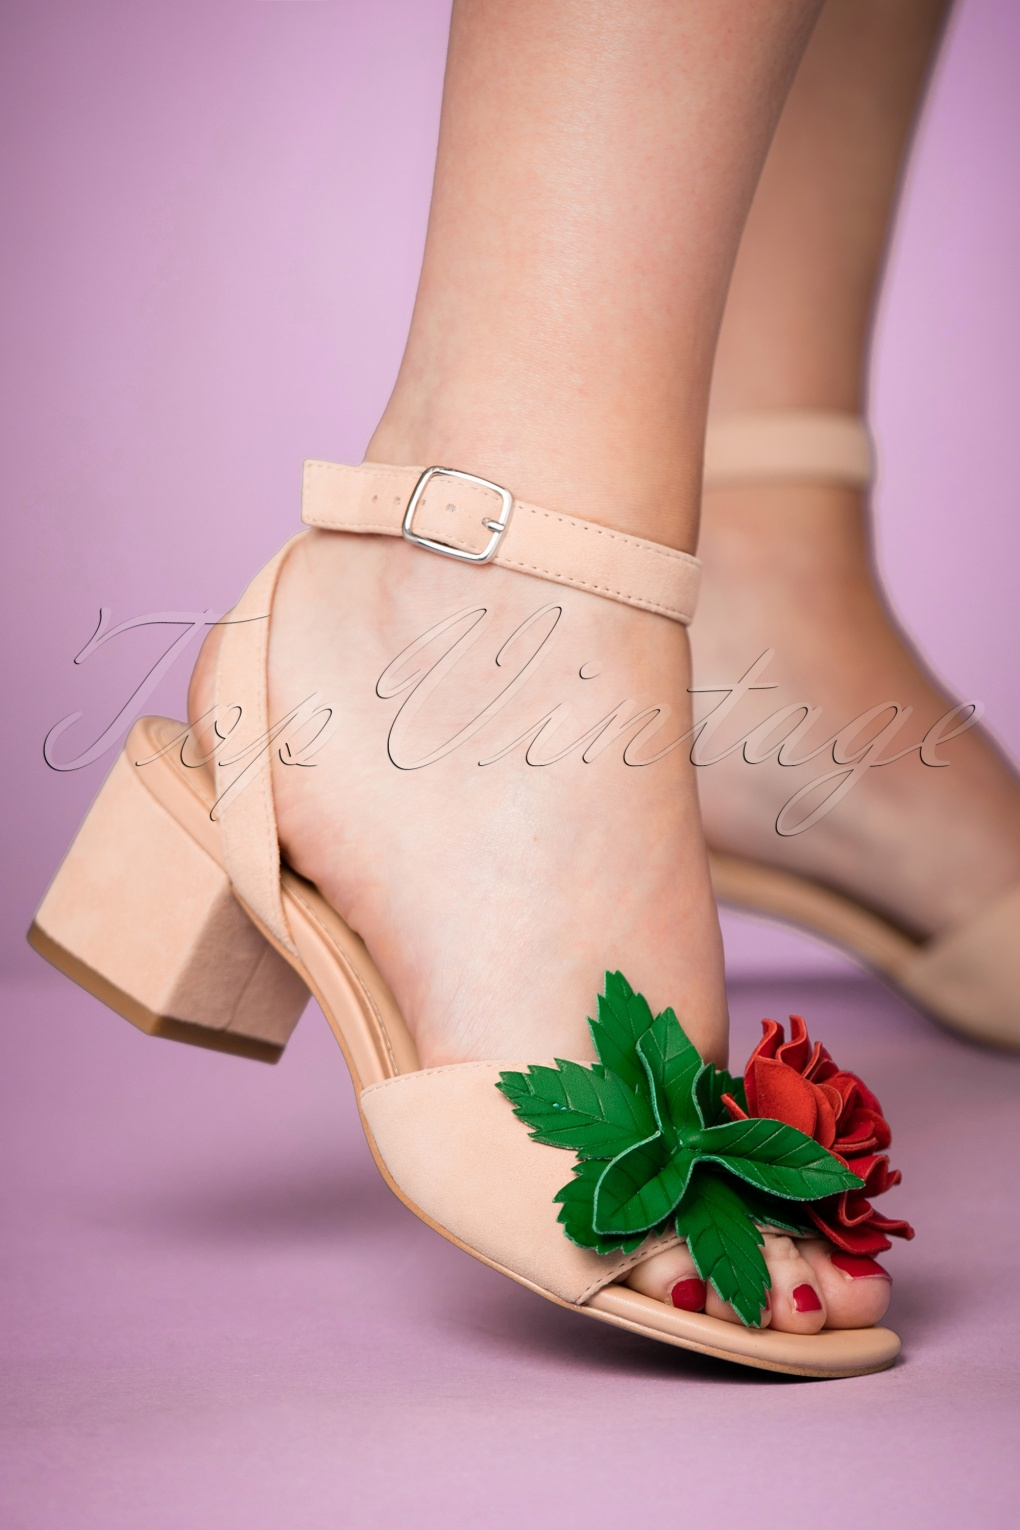 60s Shoes, Boots | 70s Shoes, Platforms, Boots 60s Elanor Suede Sandals in Blush Nude £114.68 AT vintagedancer.com